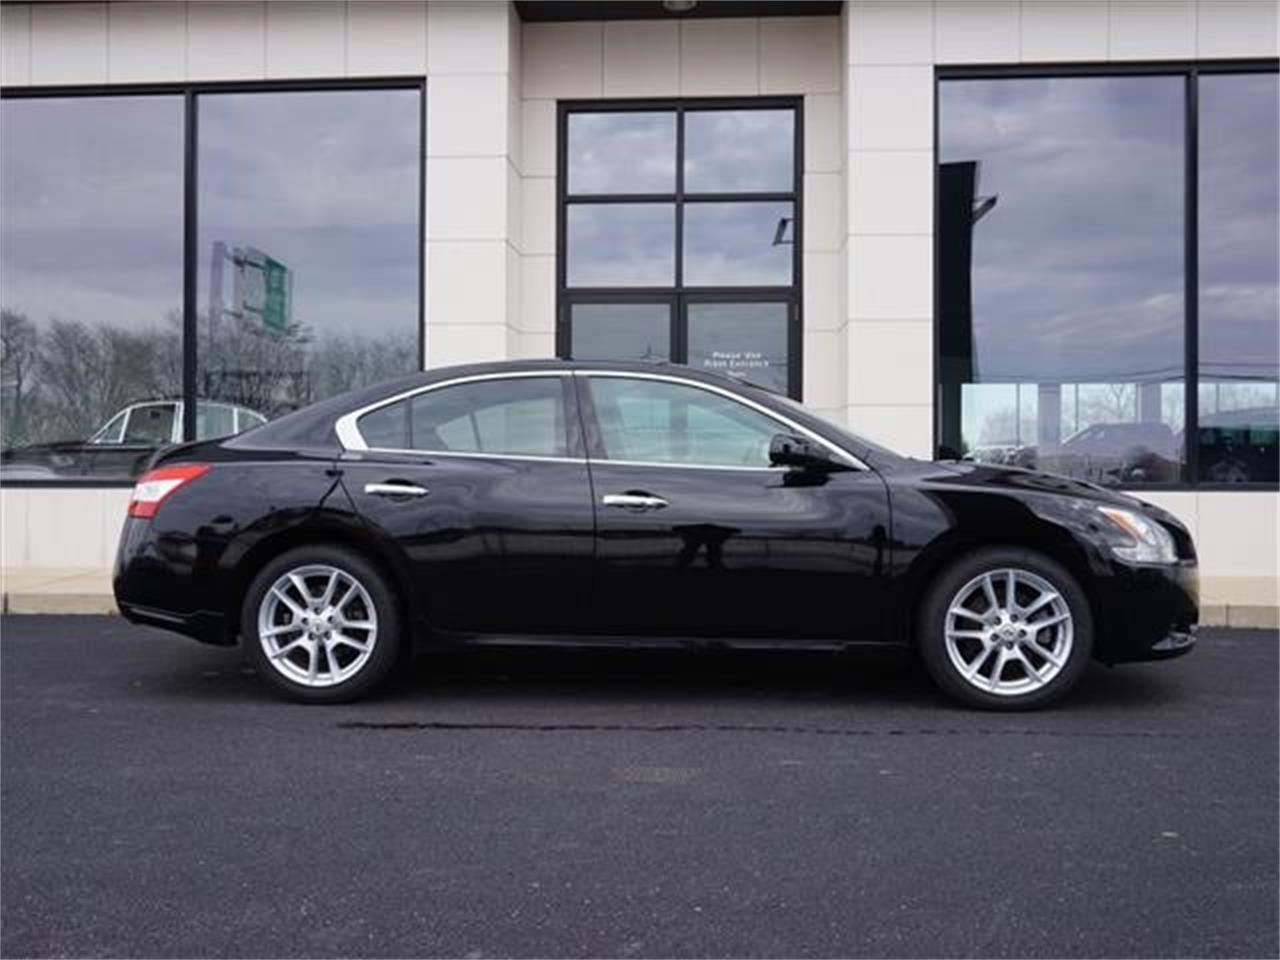 Large Picture of 2010 Maxima - $9,999.00 Offered by Nelson Automotive, Ltd. - KHAD